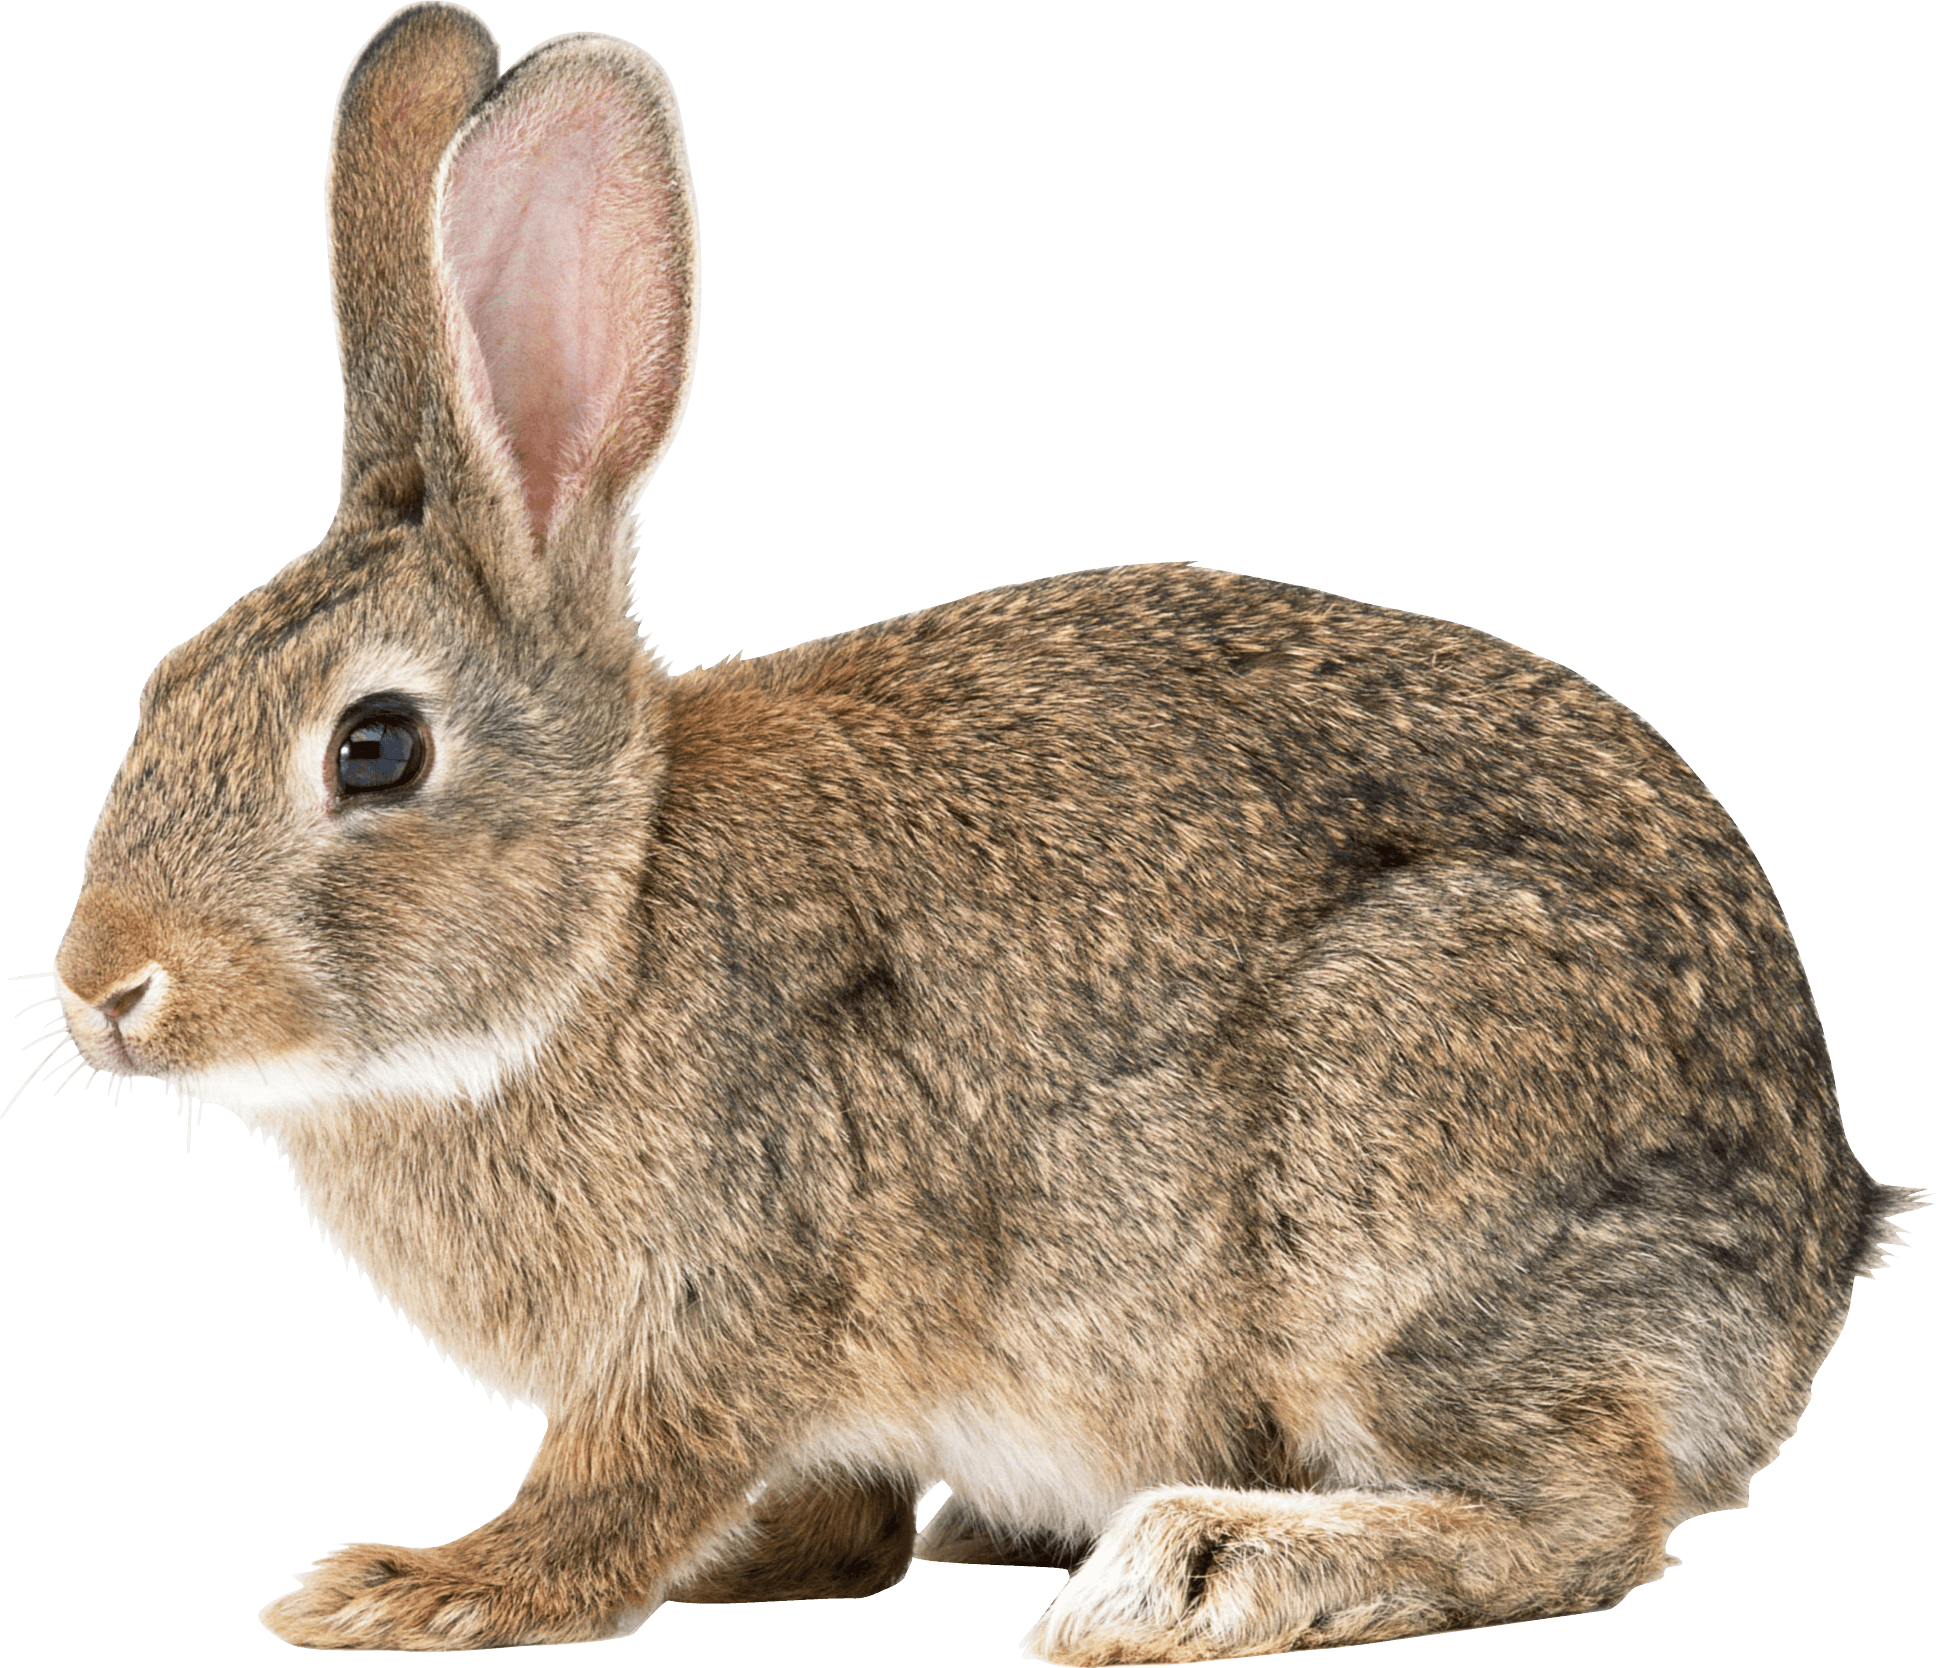 It's just a graphic of Ridiculous Cute Bunny Png Drawing